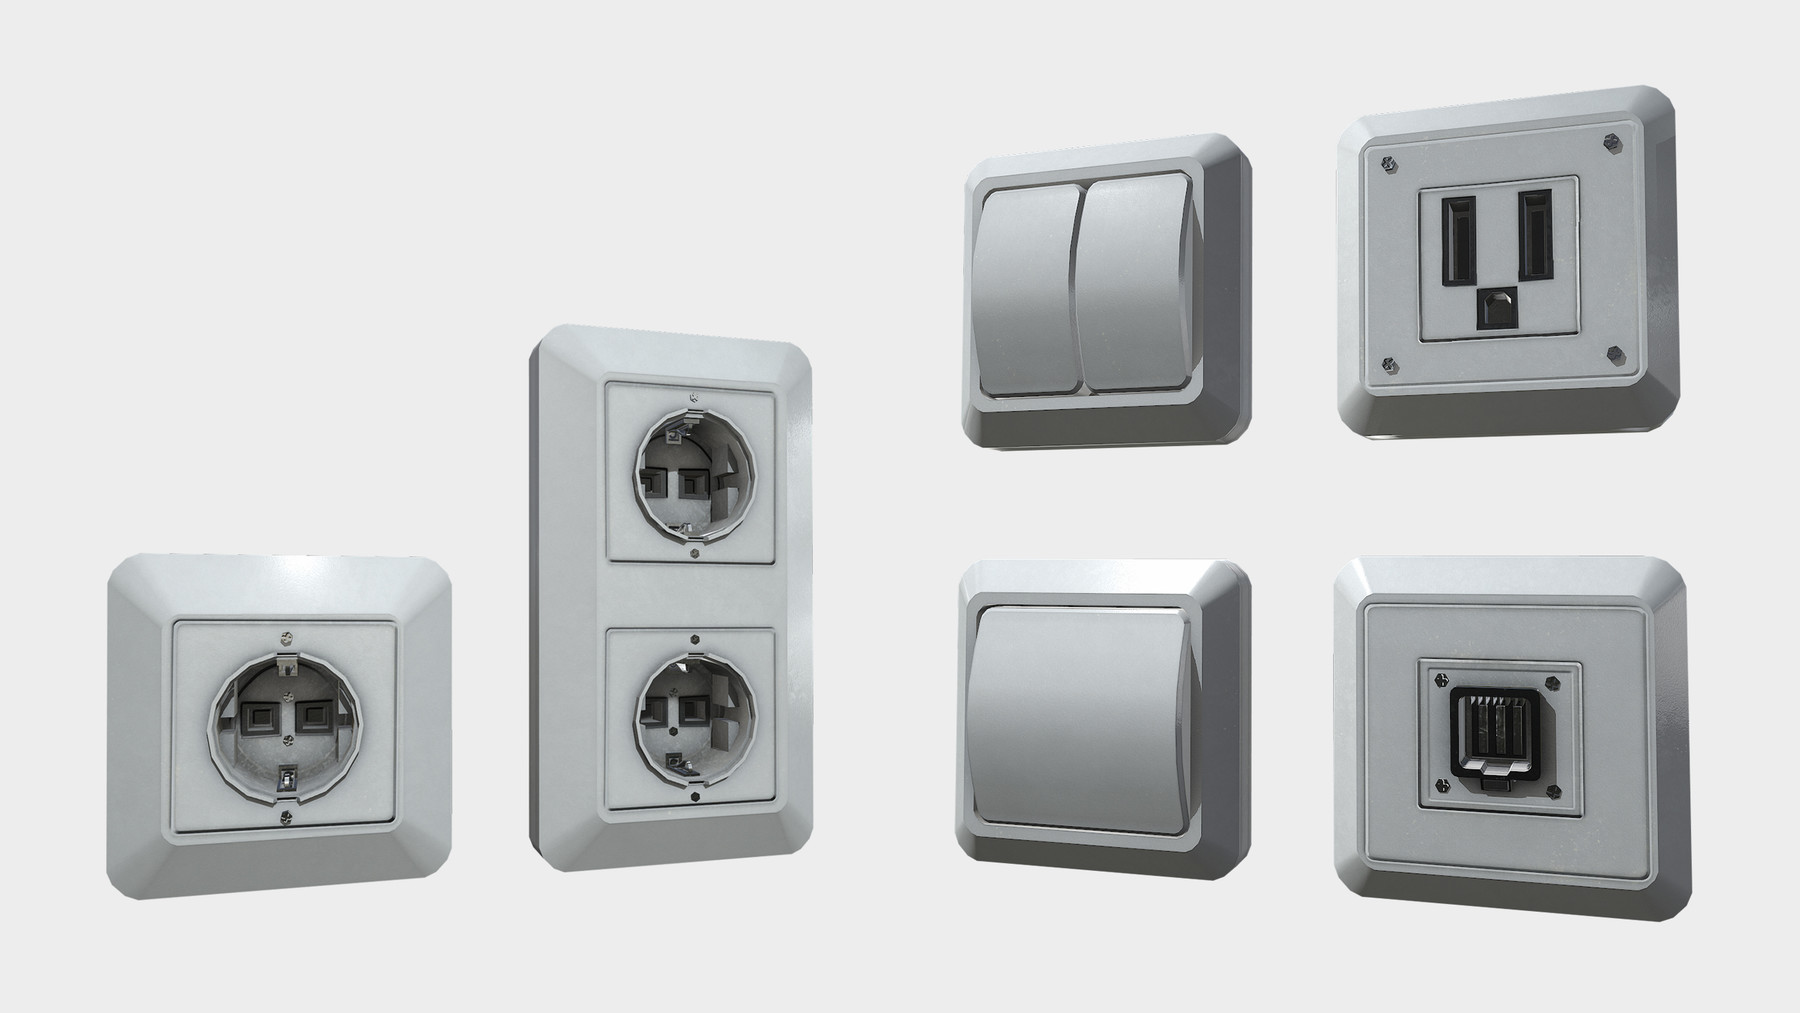 medium resolution of sockets and fuse box pack will help you decorate your interior with a more realistic look